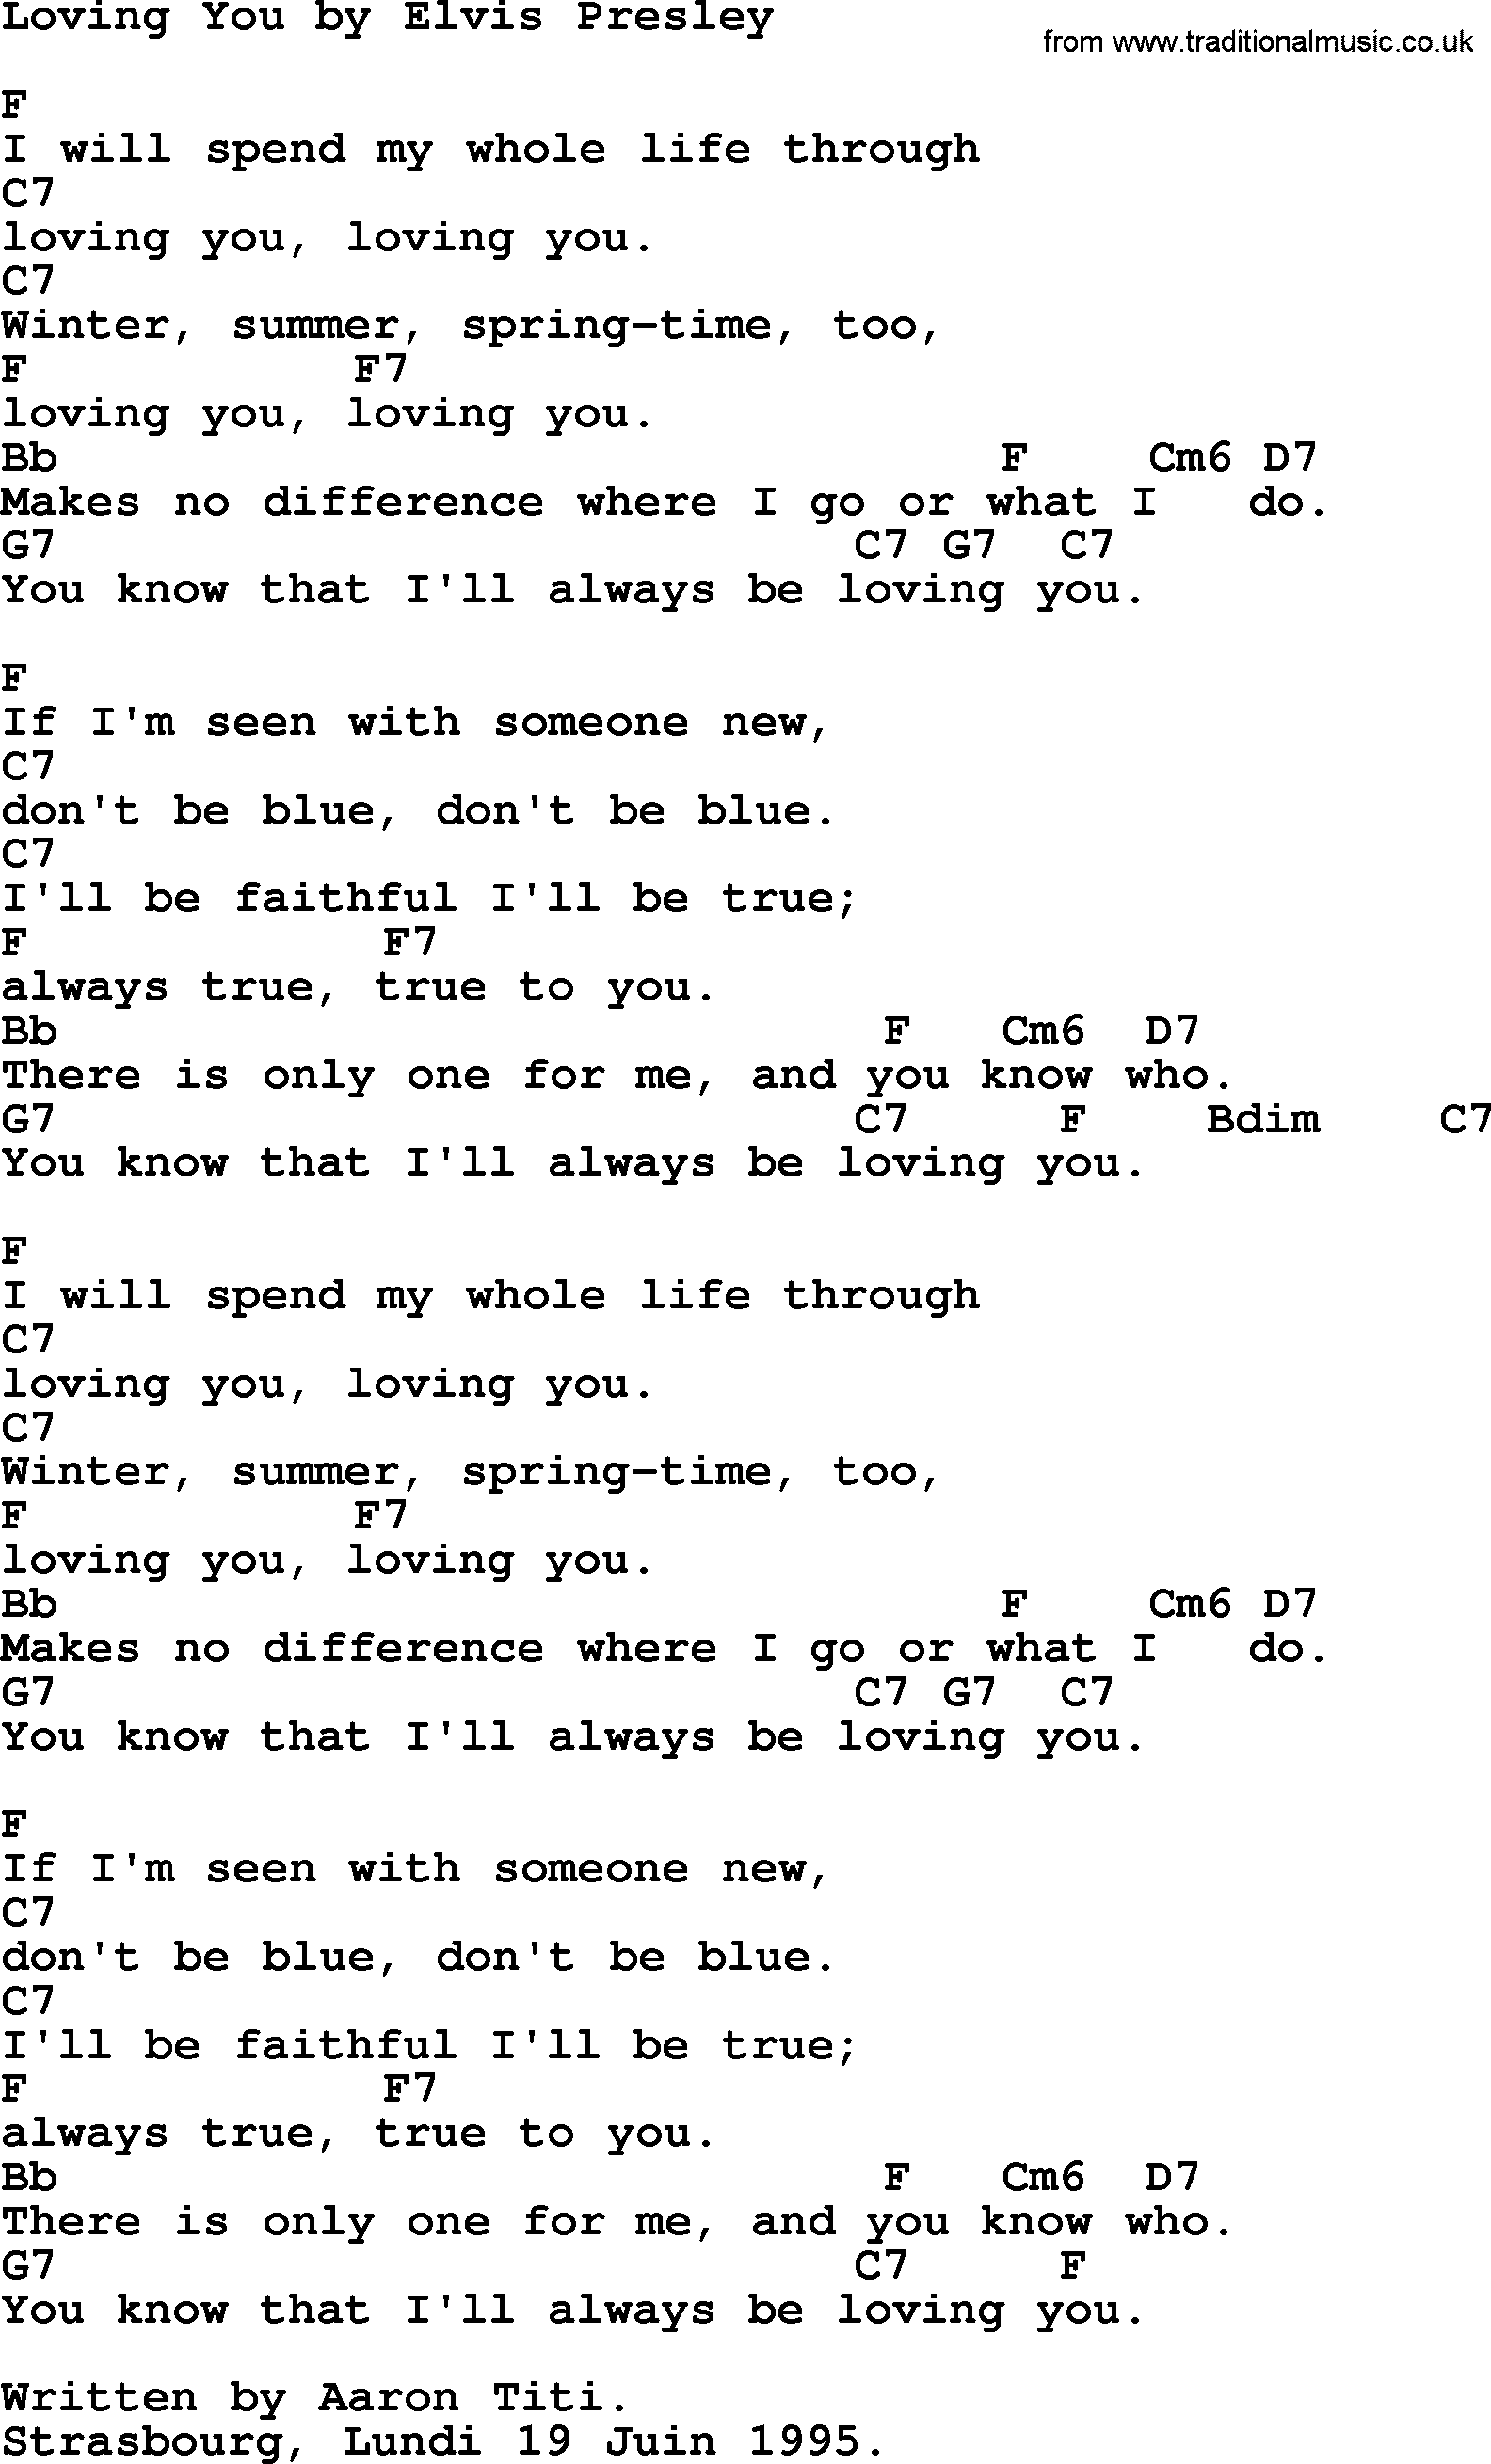 Loving You By Elvis Presley Lyrics And Chords